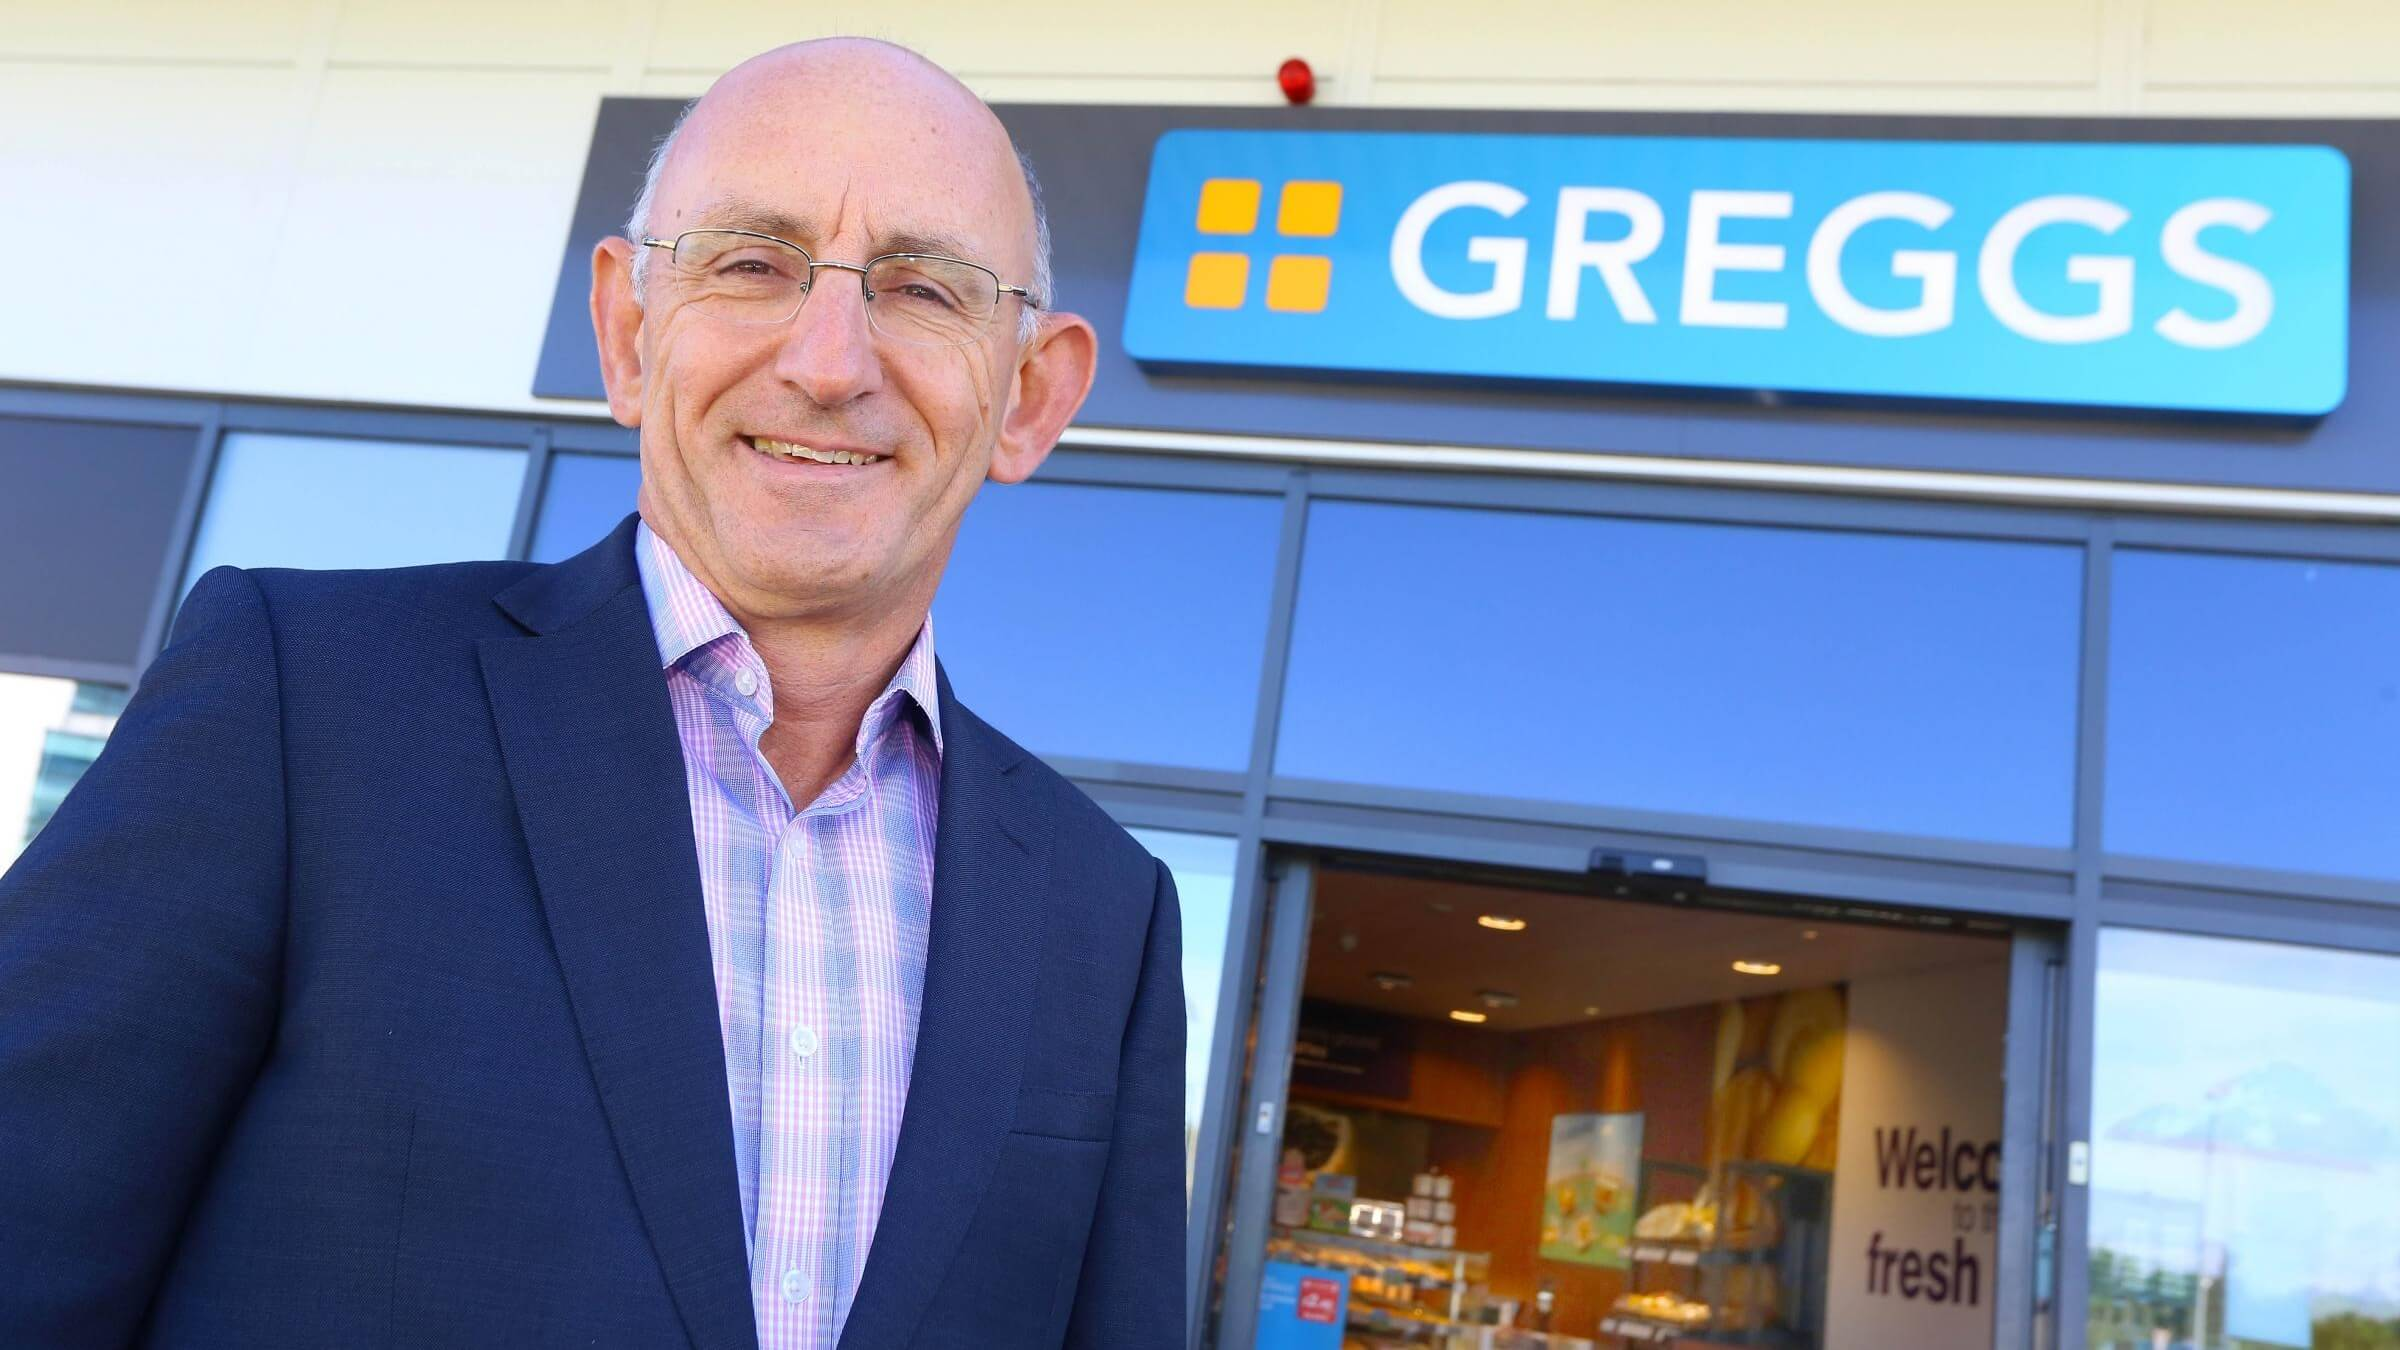 Greggs' CEO Goes Vegan Because of 'The Game Changers'